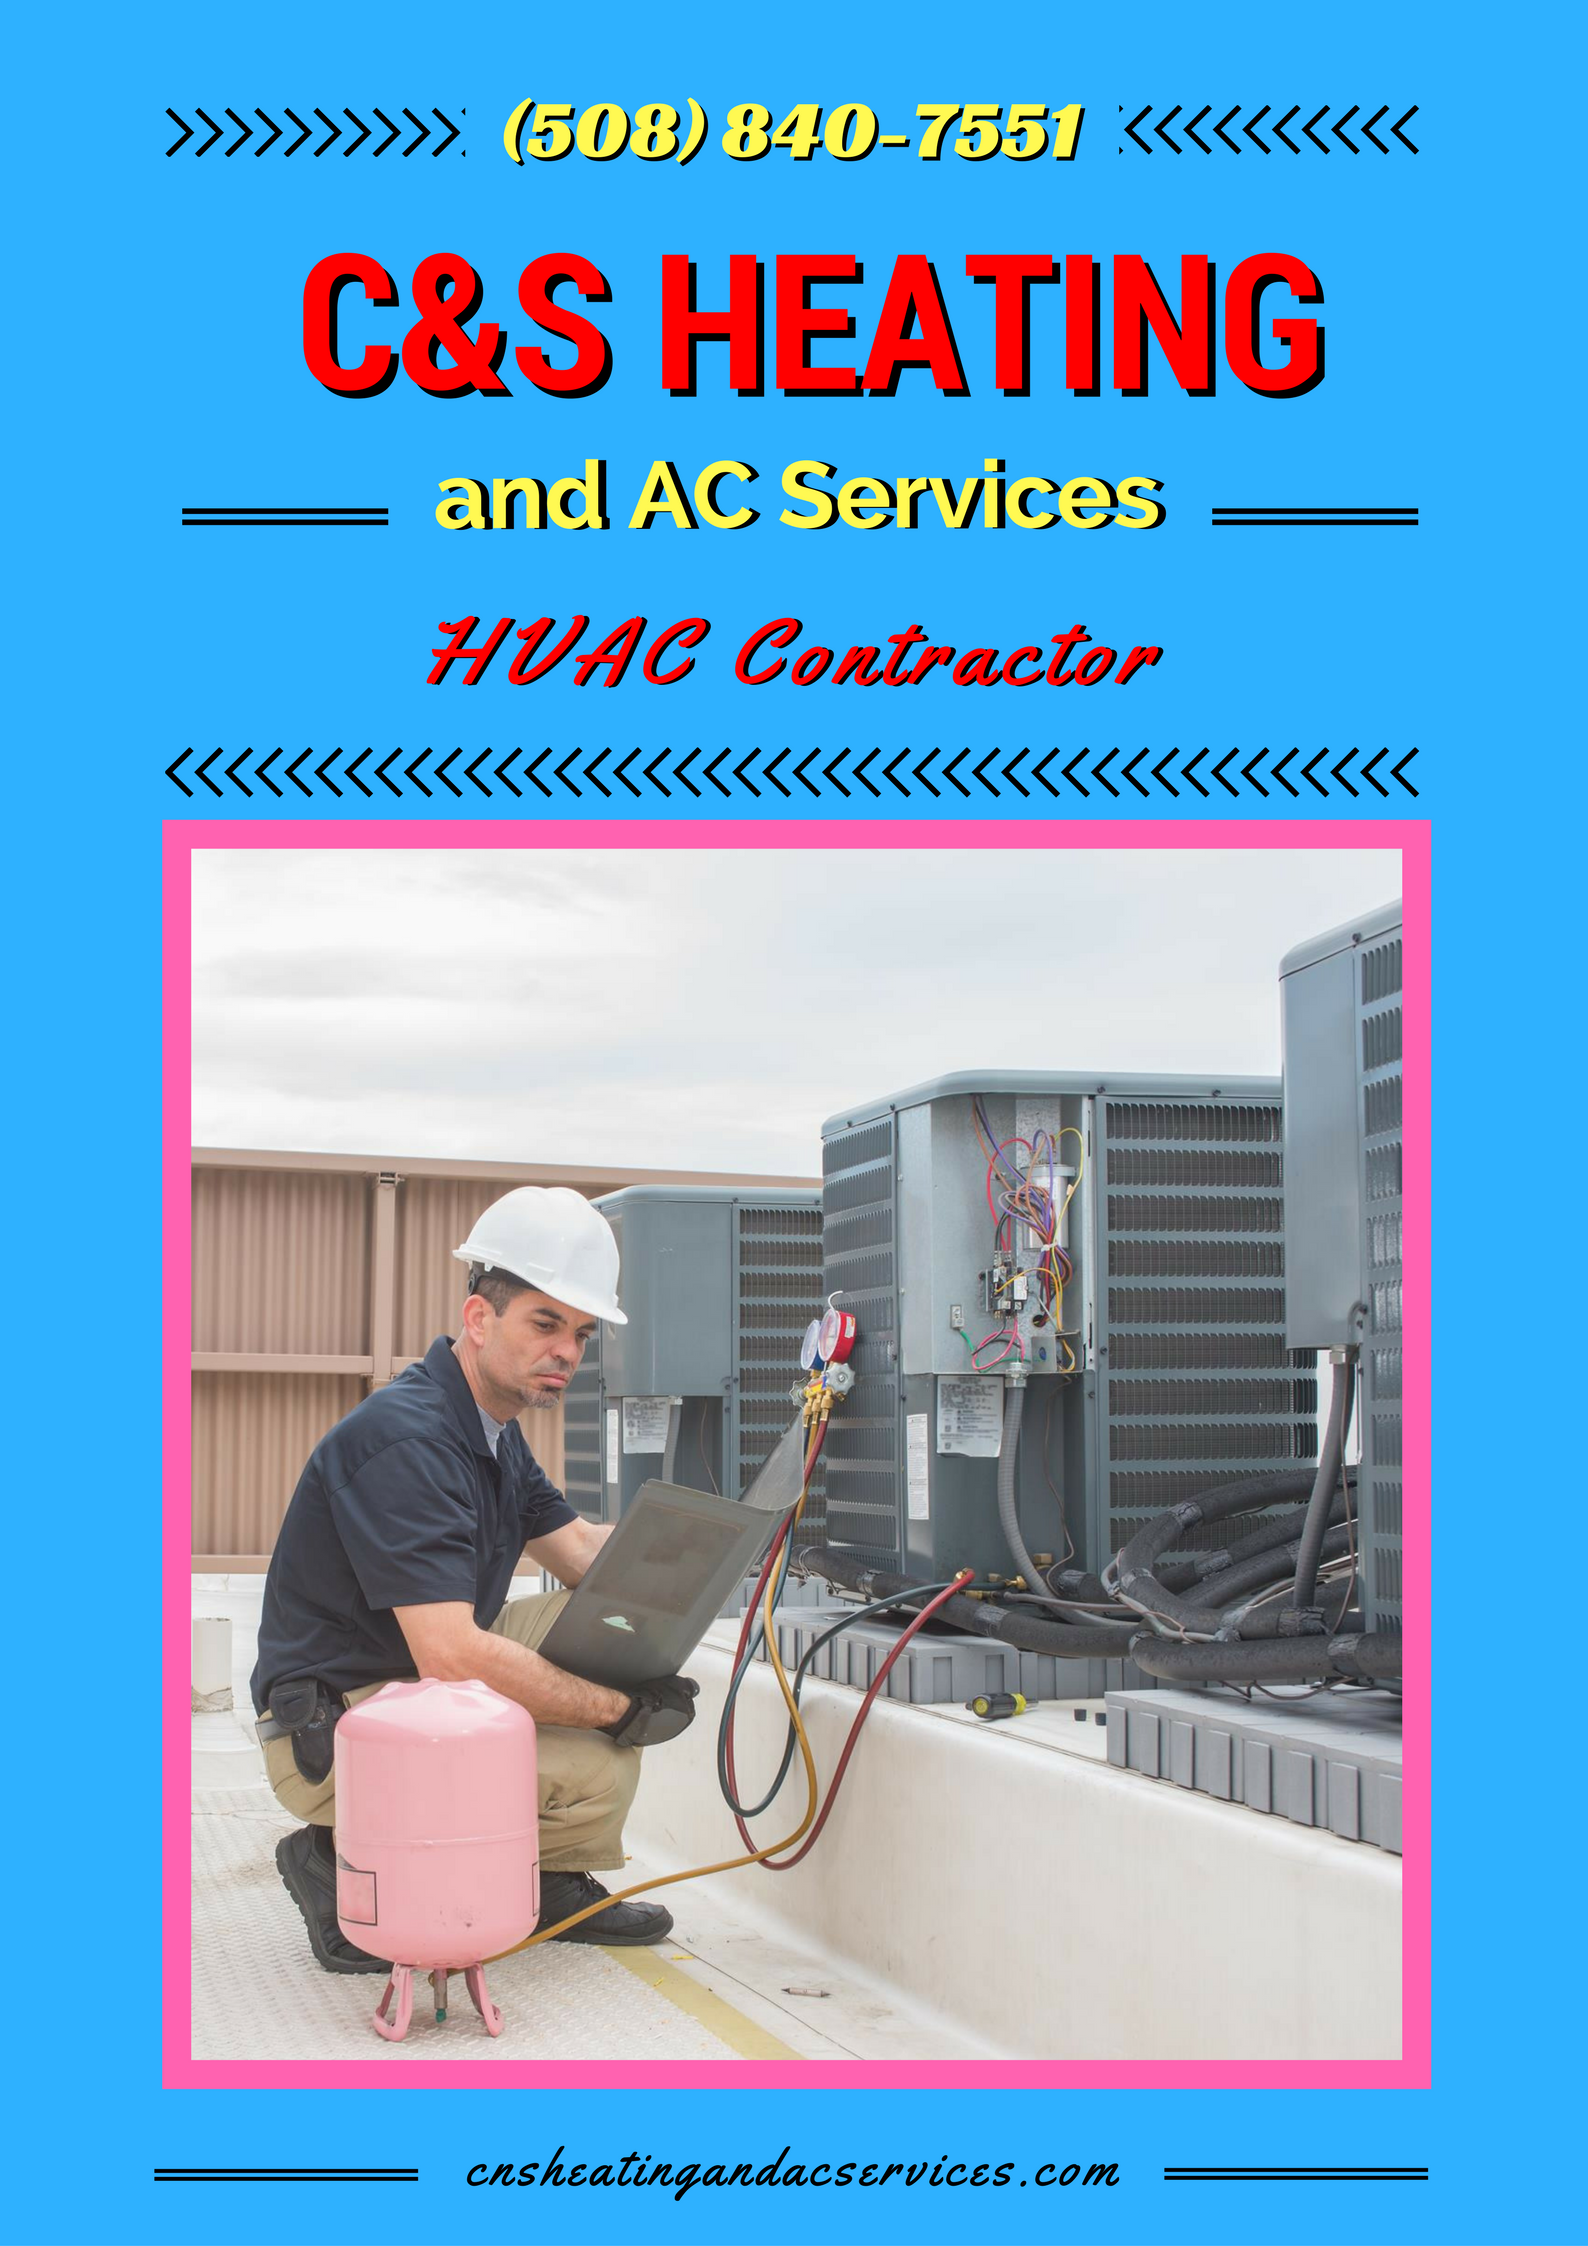 If you have a problem with your heating or air